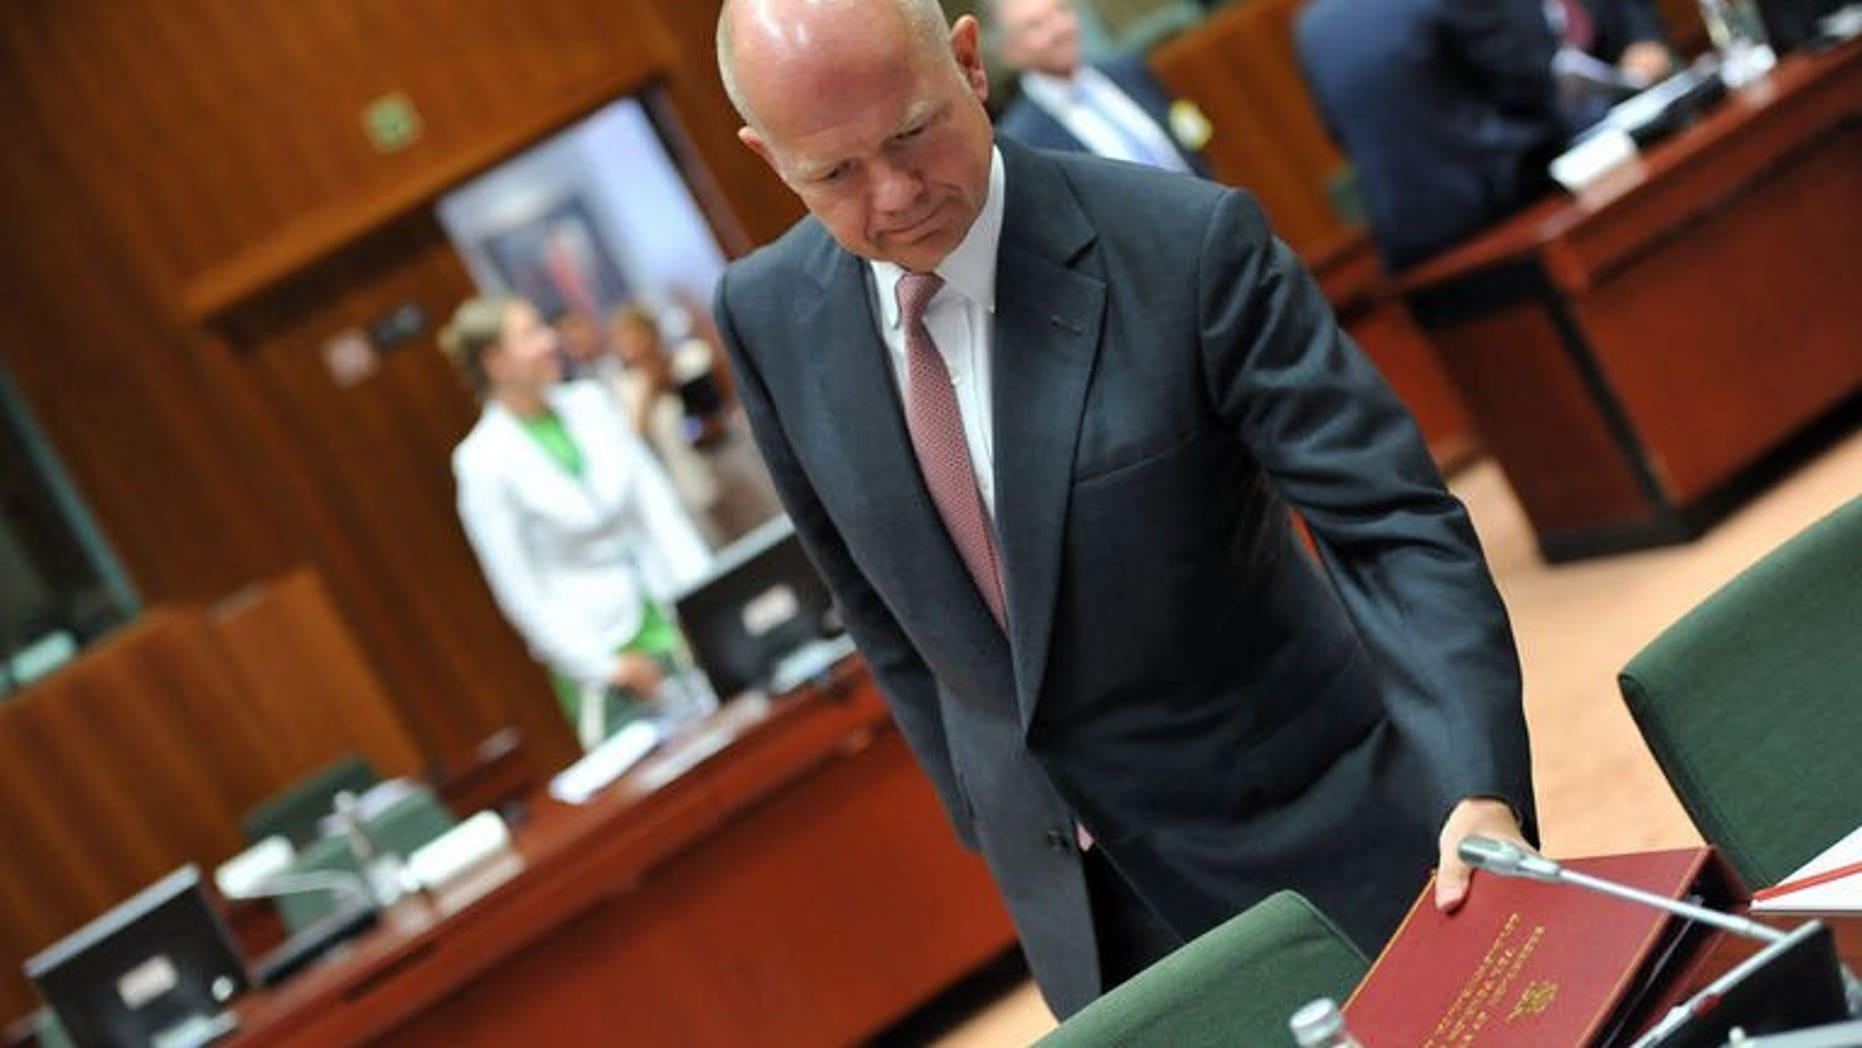 Britains's Foreign Secretary William Hague arrives on August 21, 2013 at the European Headquarters. The British government believes the Syrian regime of President Bashar al-Assad is responsible for an alleged chemical weapons attack this week, Hague said Friday.